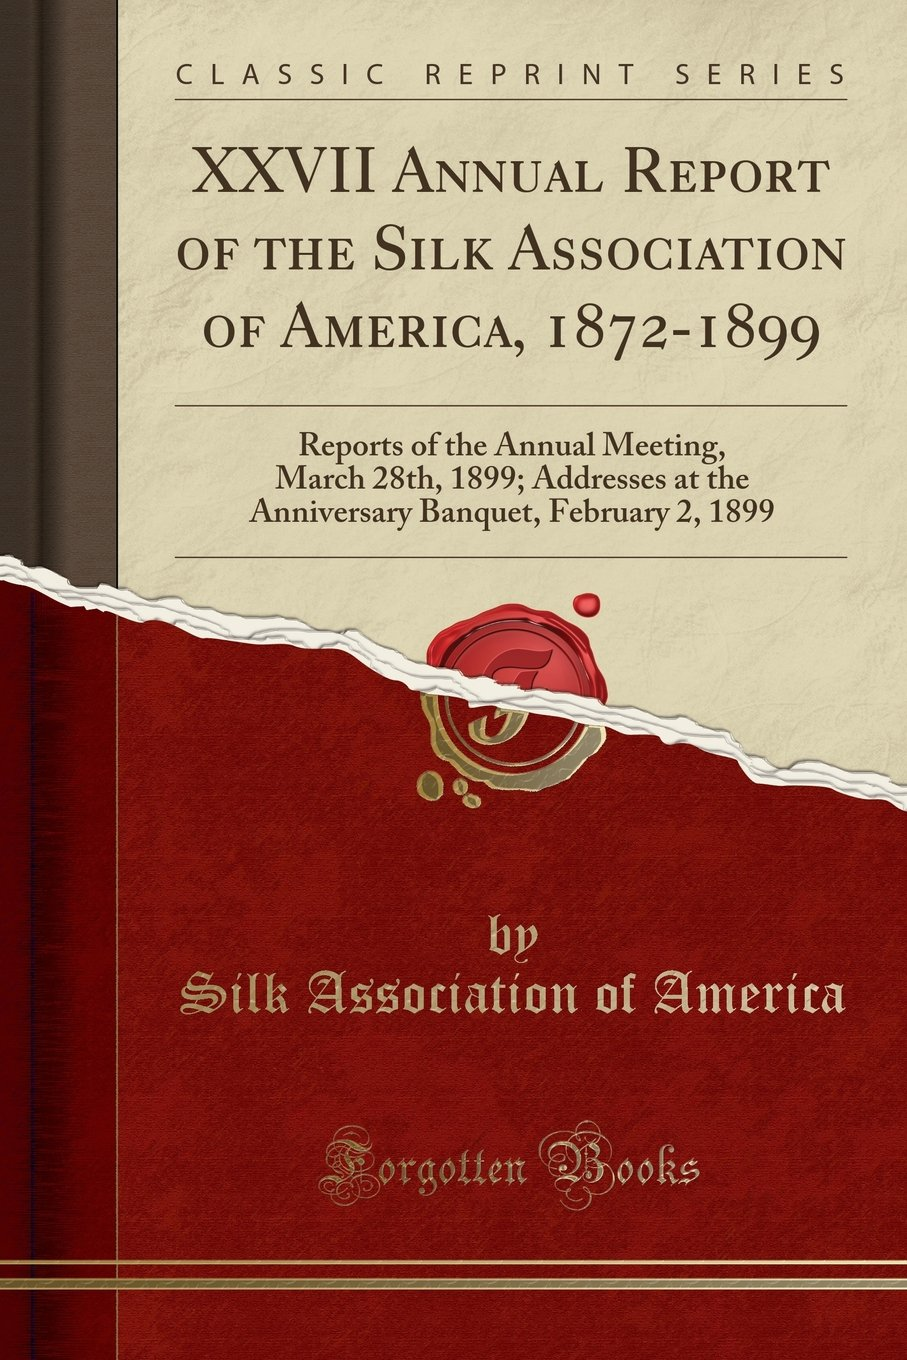 XXVII Annual Report of the Silk Association of America, 1872-1899: Reports of the Annual Meeting, March 28th, 1899; Addresses at the Anniversary Banquet, February 2, 1899 (Classic Reprint) ebook